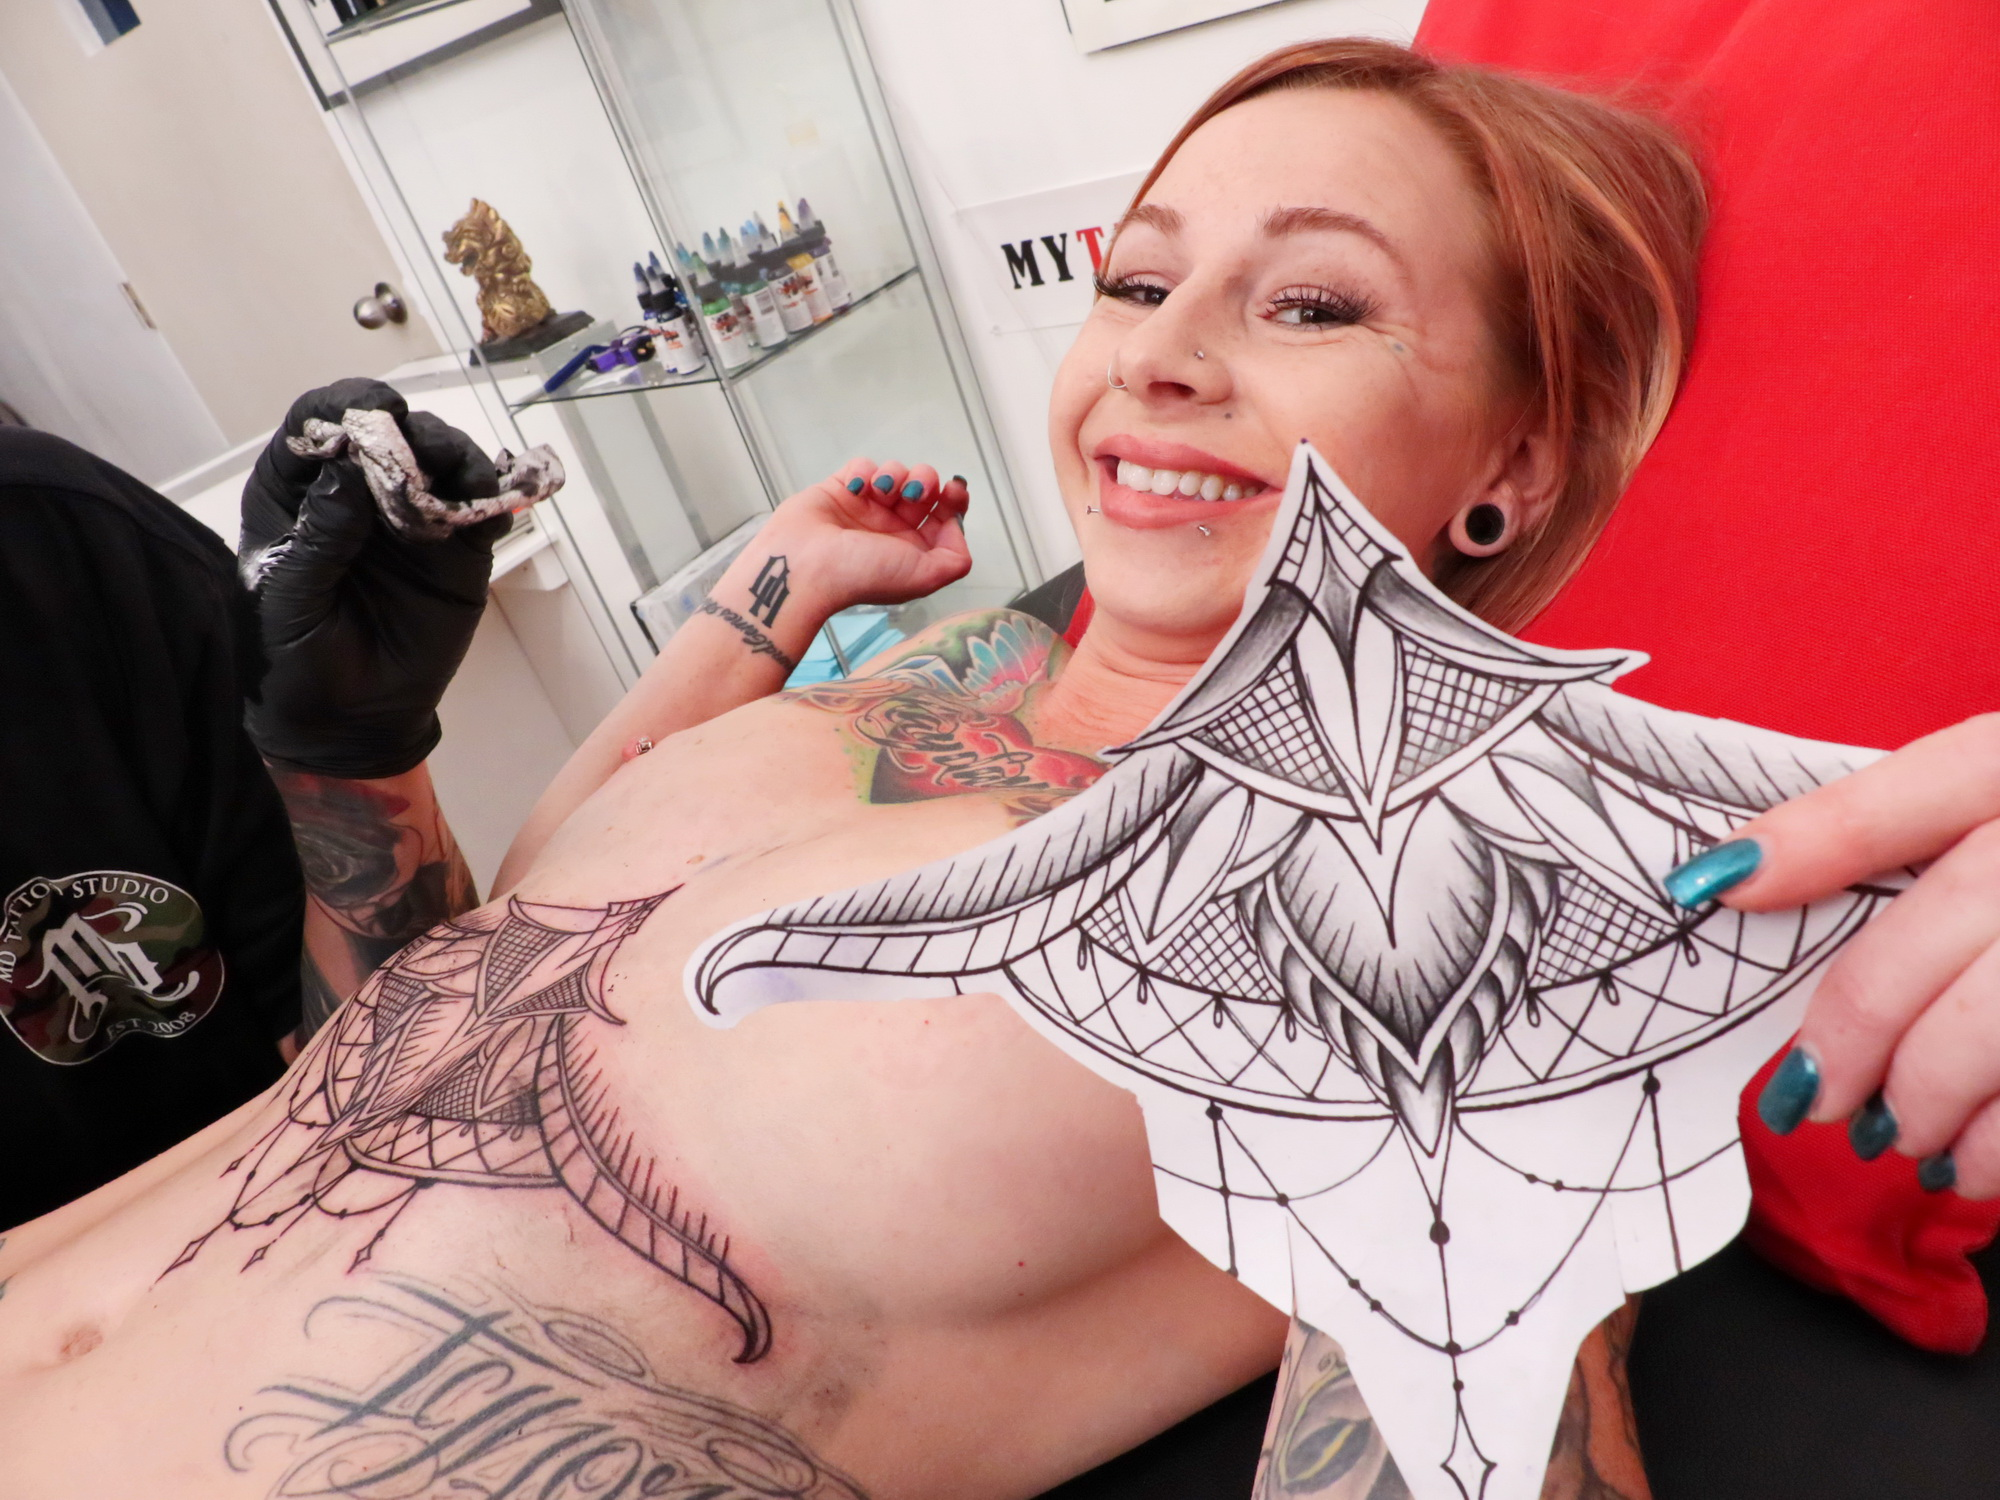 - Scarlett Pain Gets Fully Nude Getting Her Latest Tattoo-8524